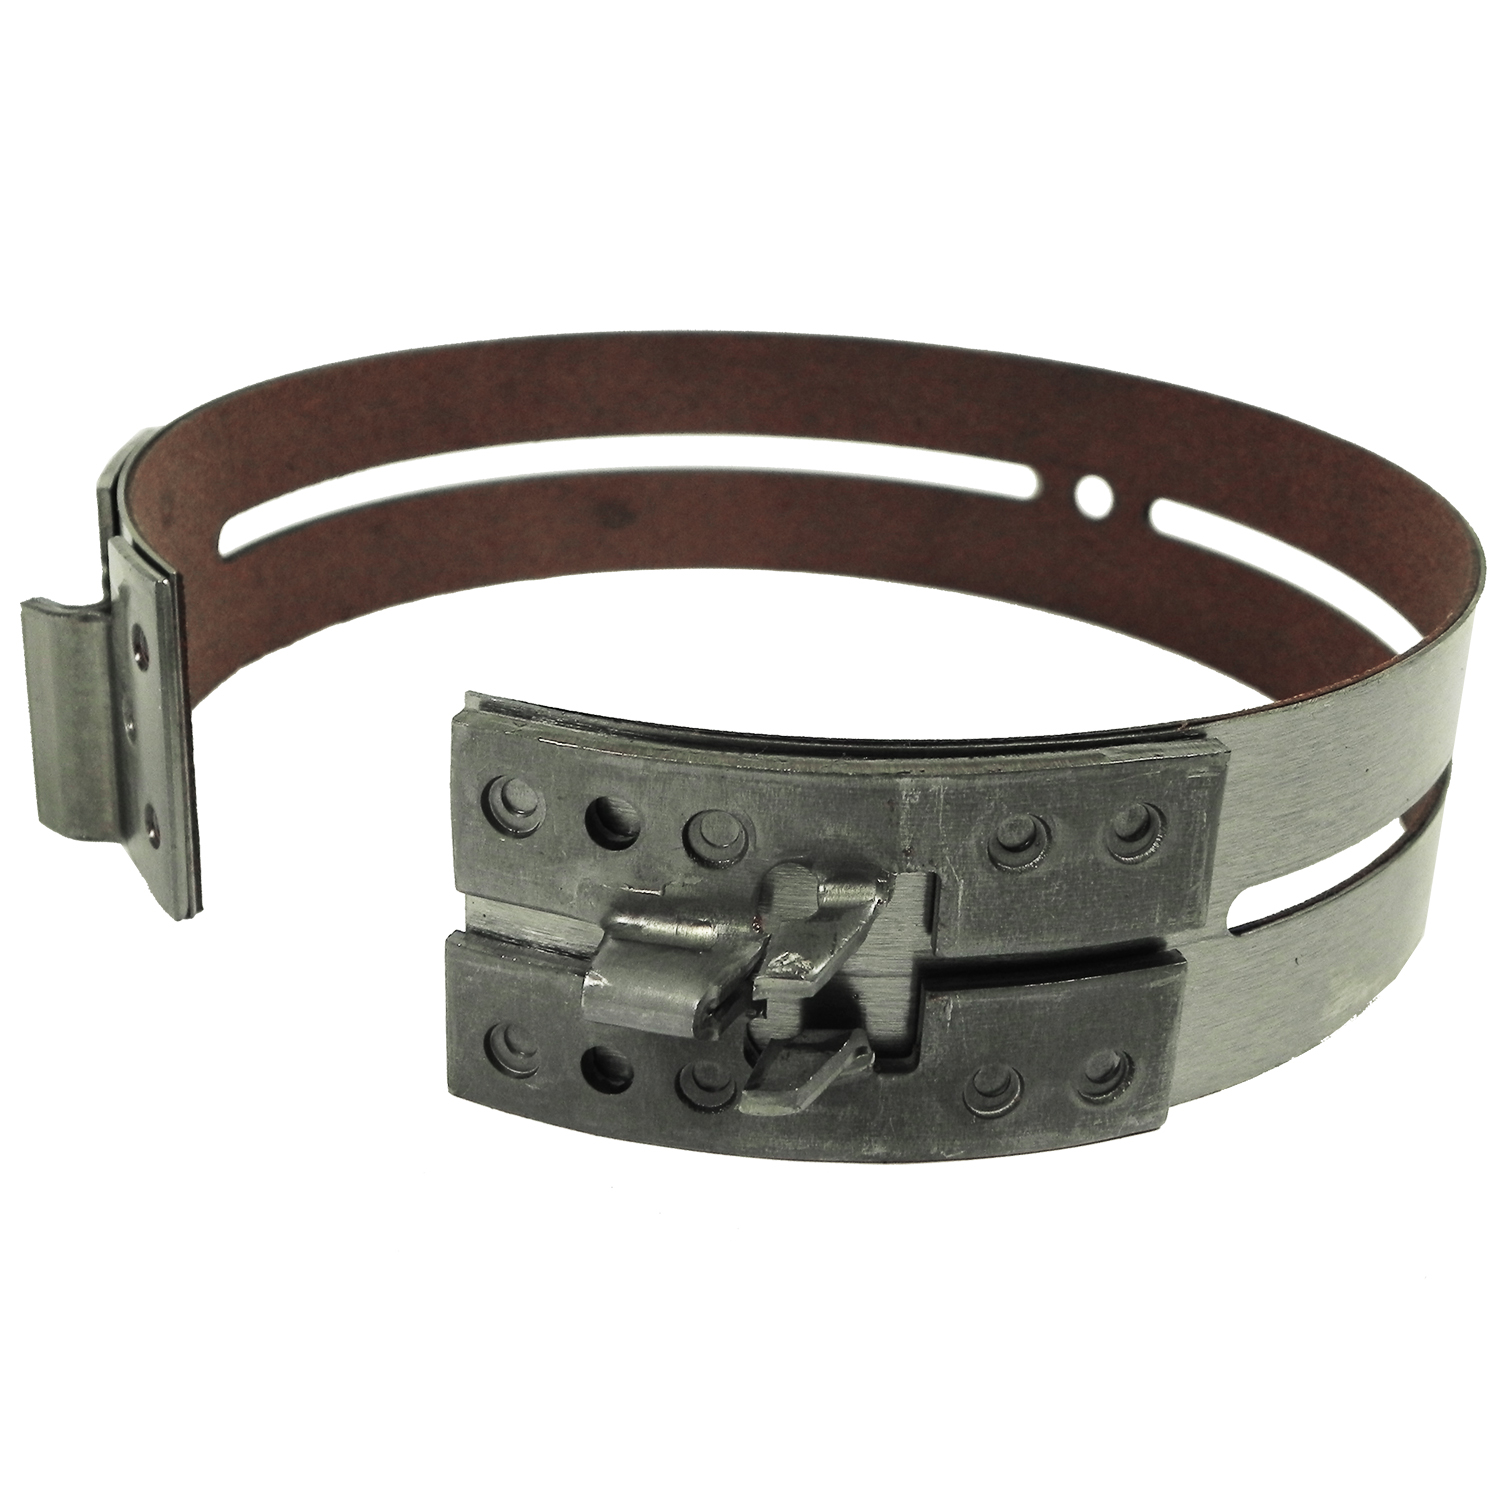 TF6, A904, A998, A999, A500 (88-04) Intermediate Heavy Duty Transmission Band